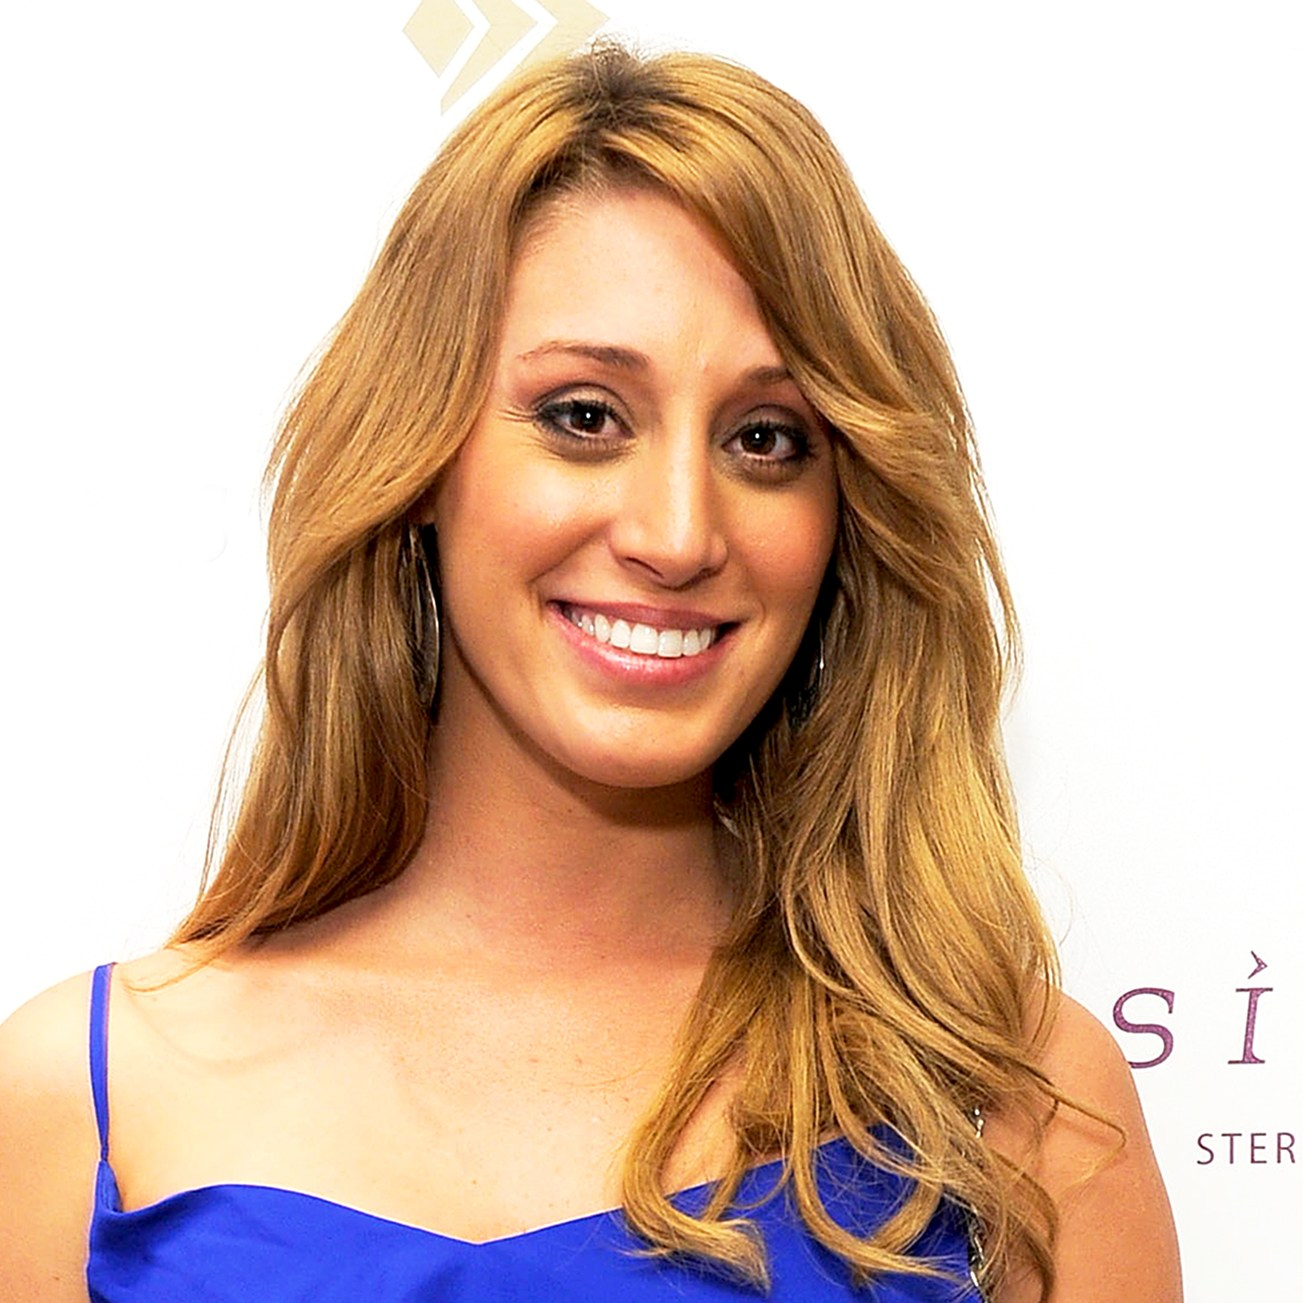 Vienna Girardi attends the Kari Feinstein Primetime Emmy Awards Style Lounge at the Mondrian Los Angeles on September 15, 2011 in West Hollywood, California.